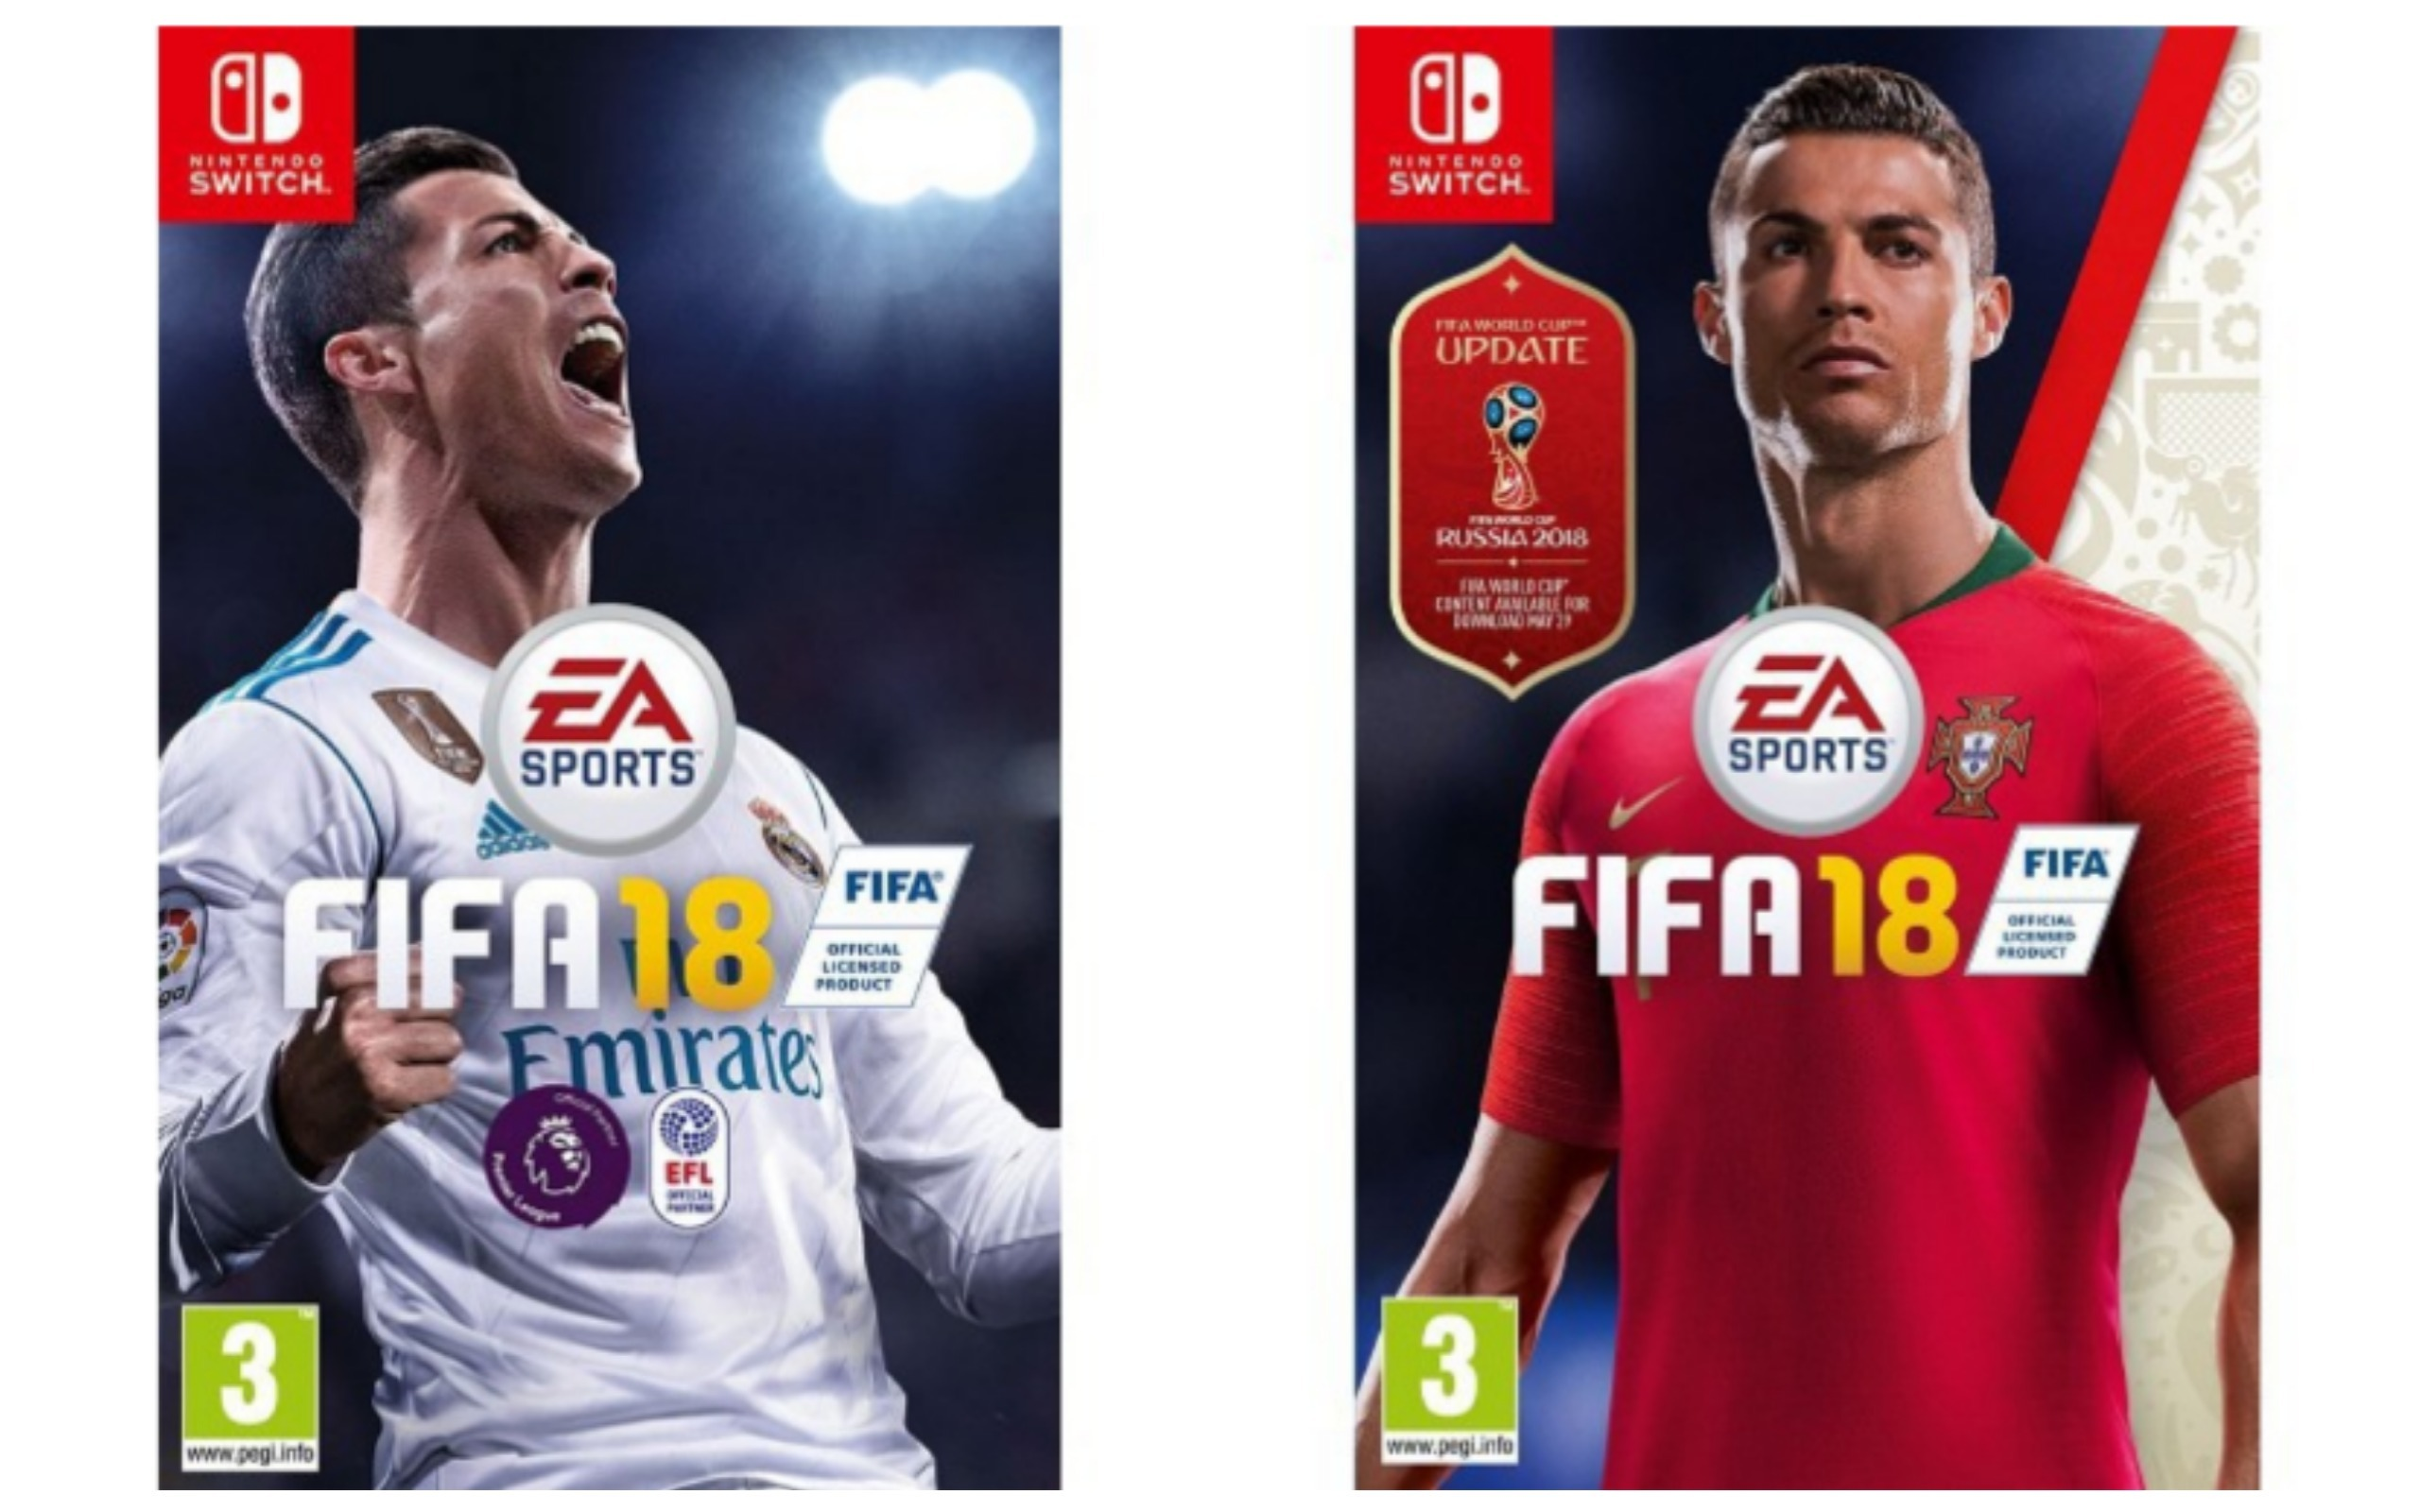 World Cup 2018 FIFA 18 Game Cover